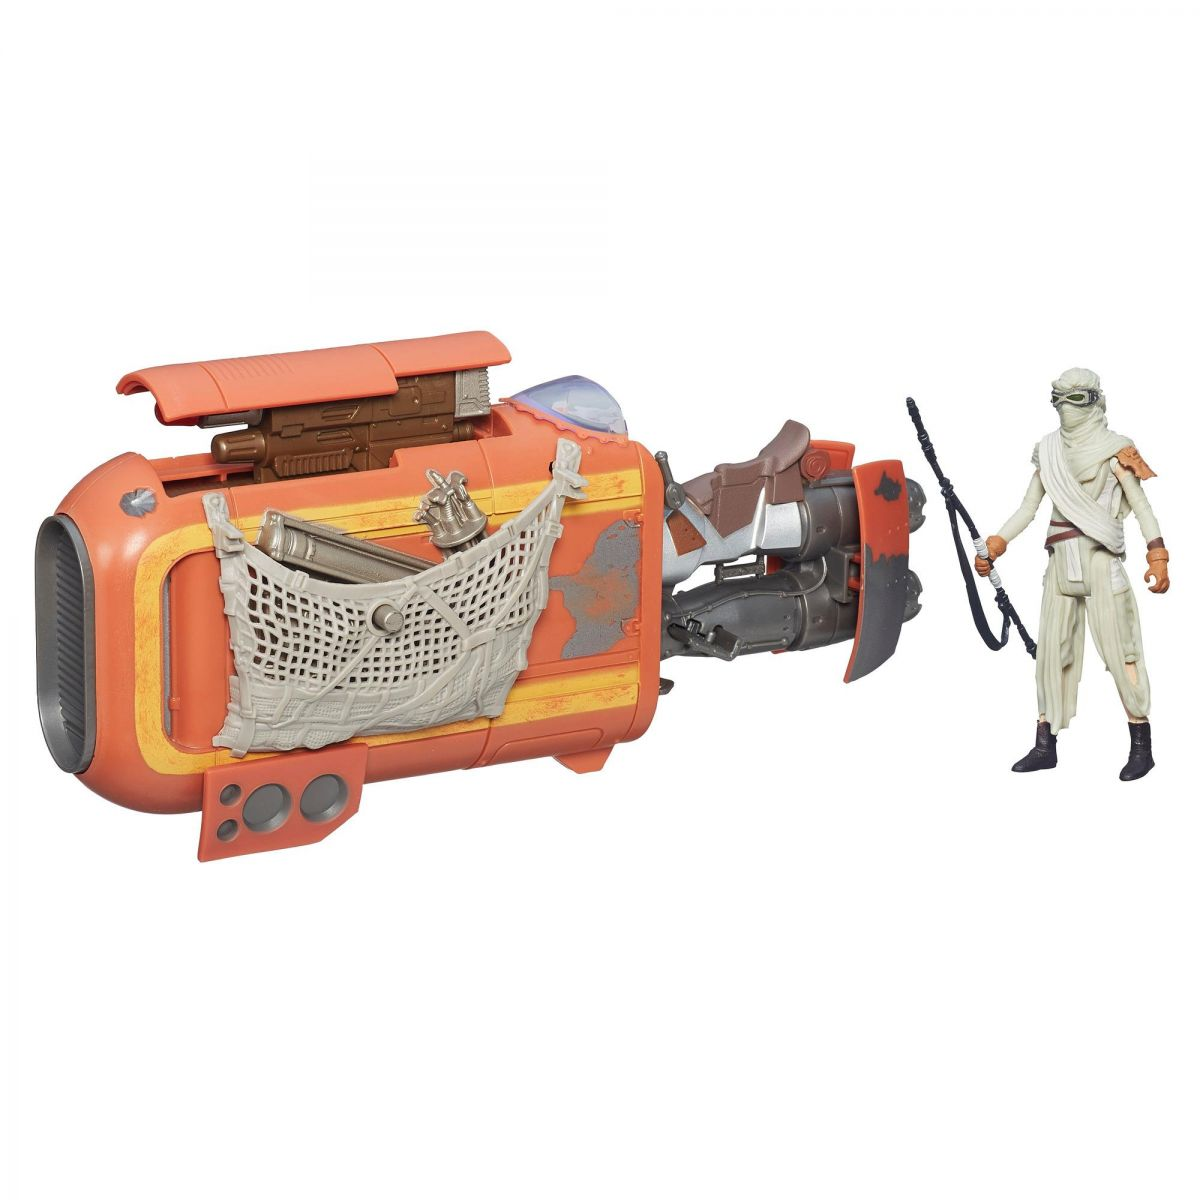 Star Wars The Force Awakens: Rey's Speeder (Jakku) - Hasbro